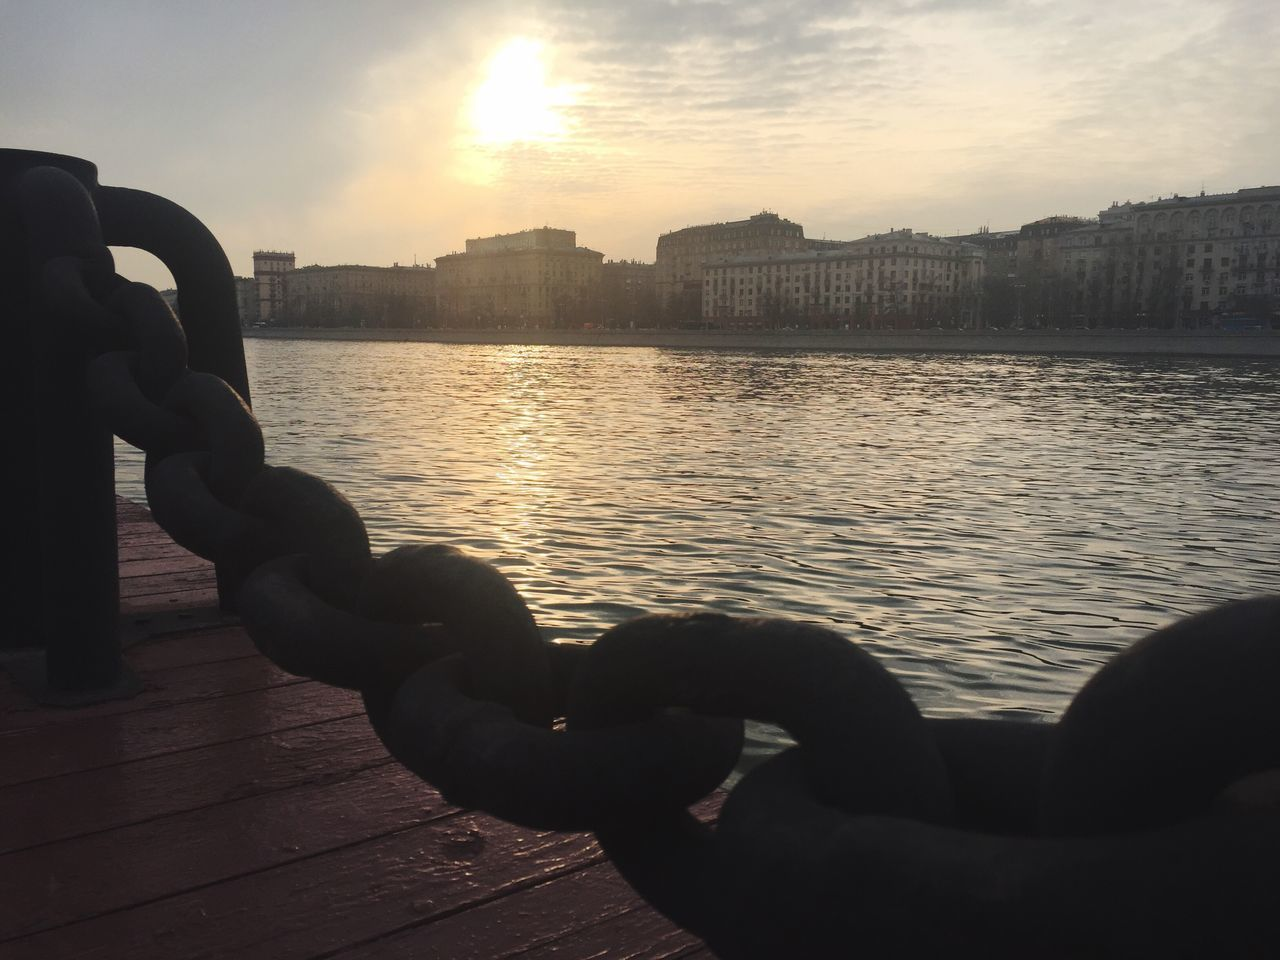 sunset, water, sky, architecture, river, built structure, building exterior, togetherness, cloud - sky, strength, outdoors, city, close-up, flexibility, human hand, day, nature, people